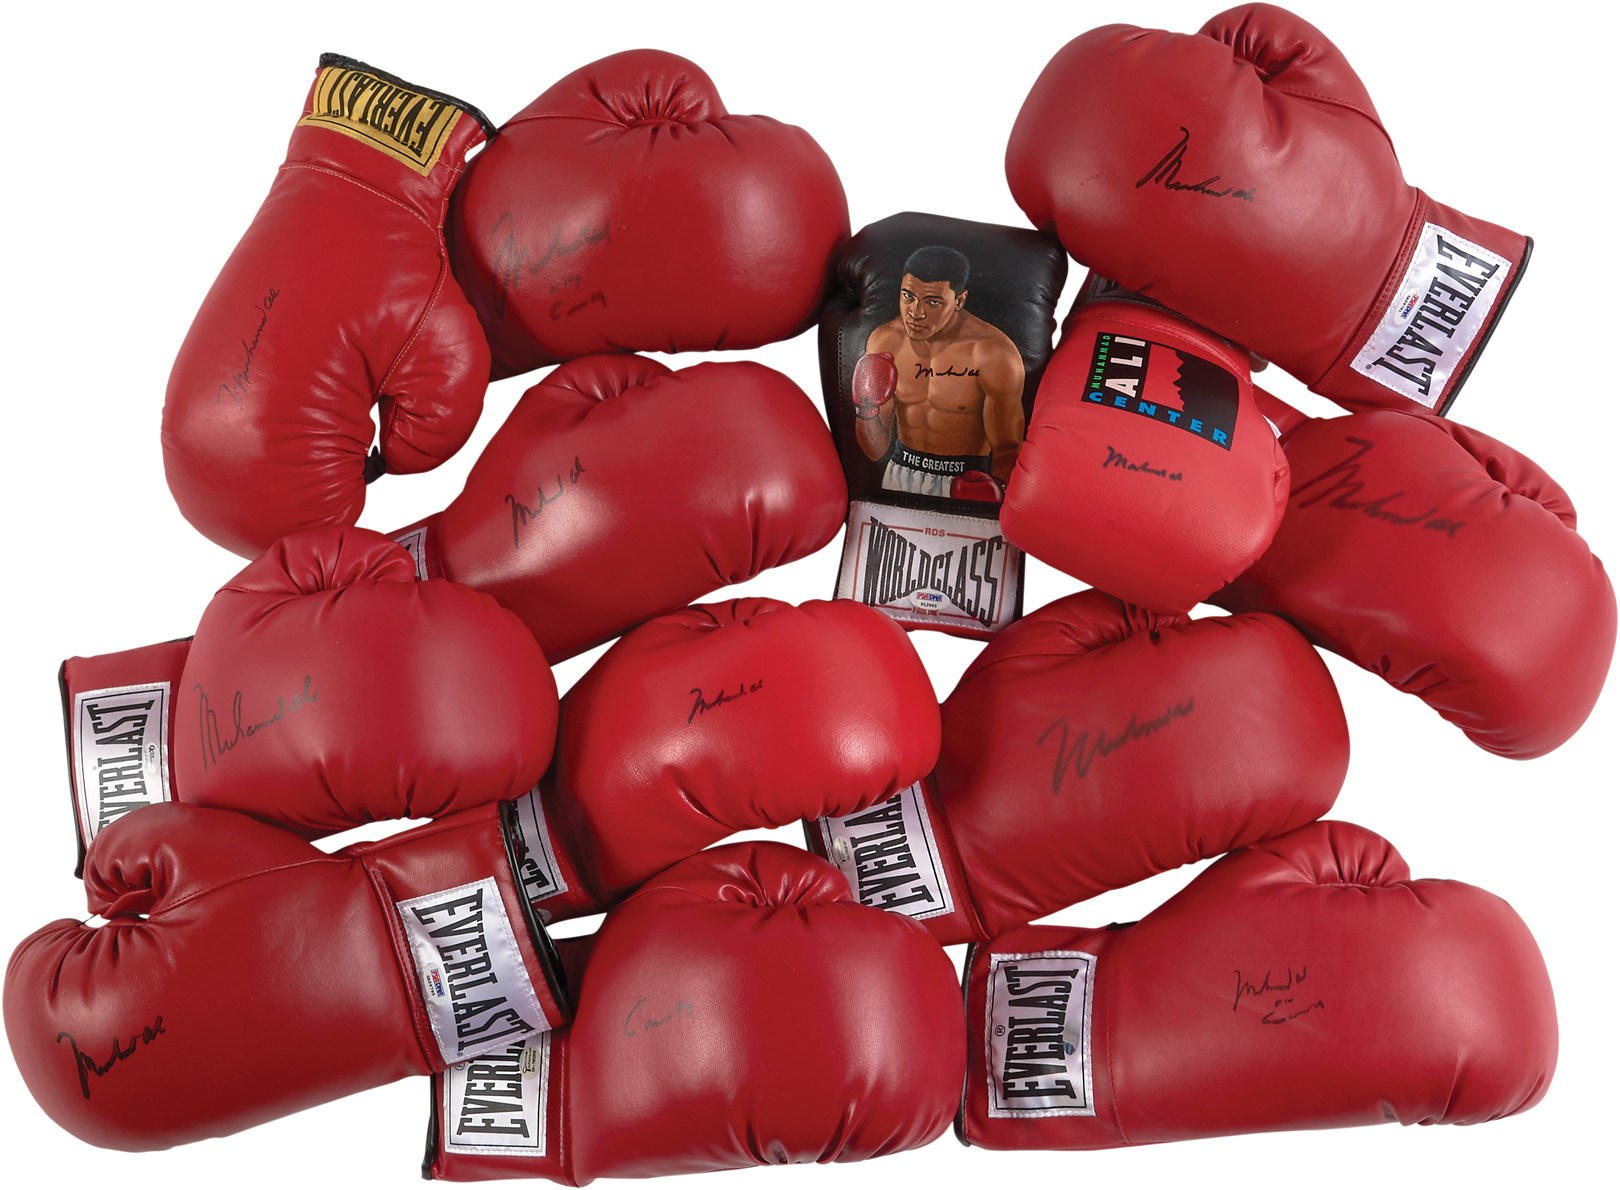 Muhammad Ali & Cassius Clay Signed Boxing Glove Collection (13)